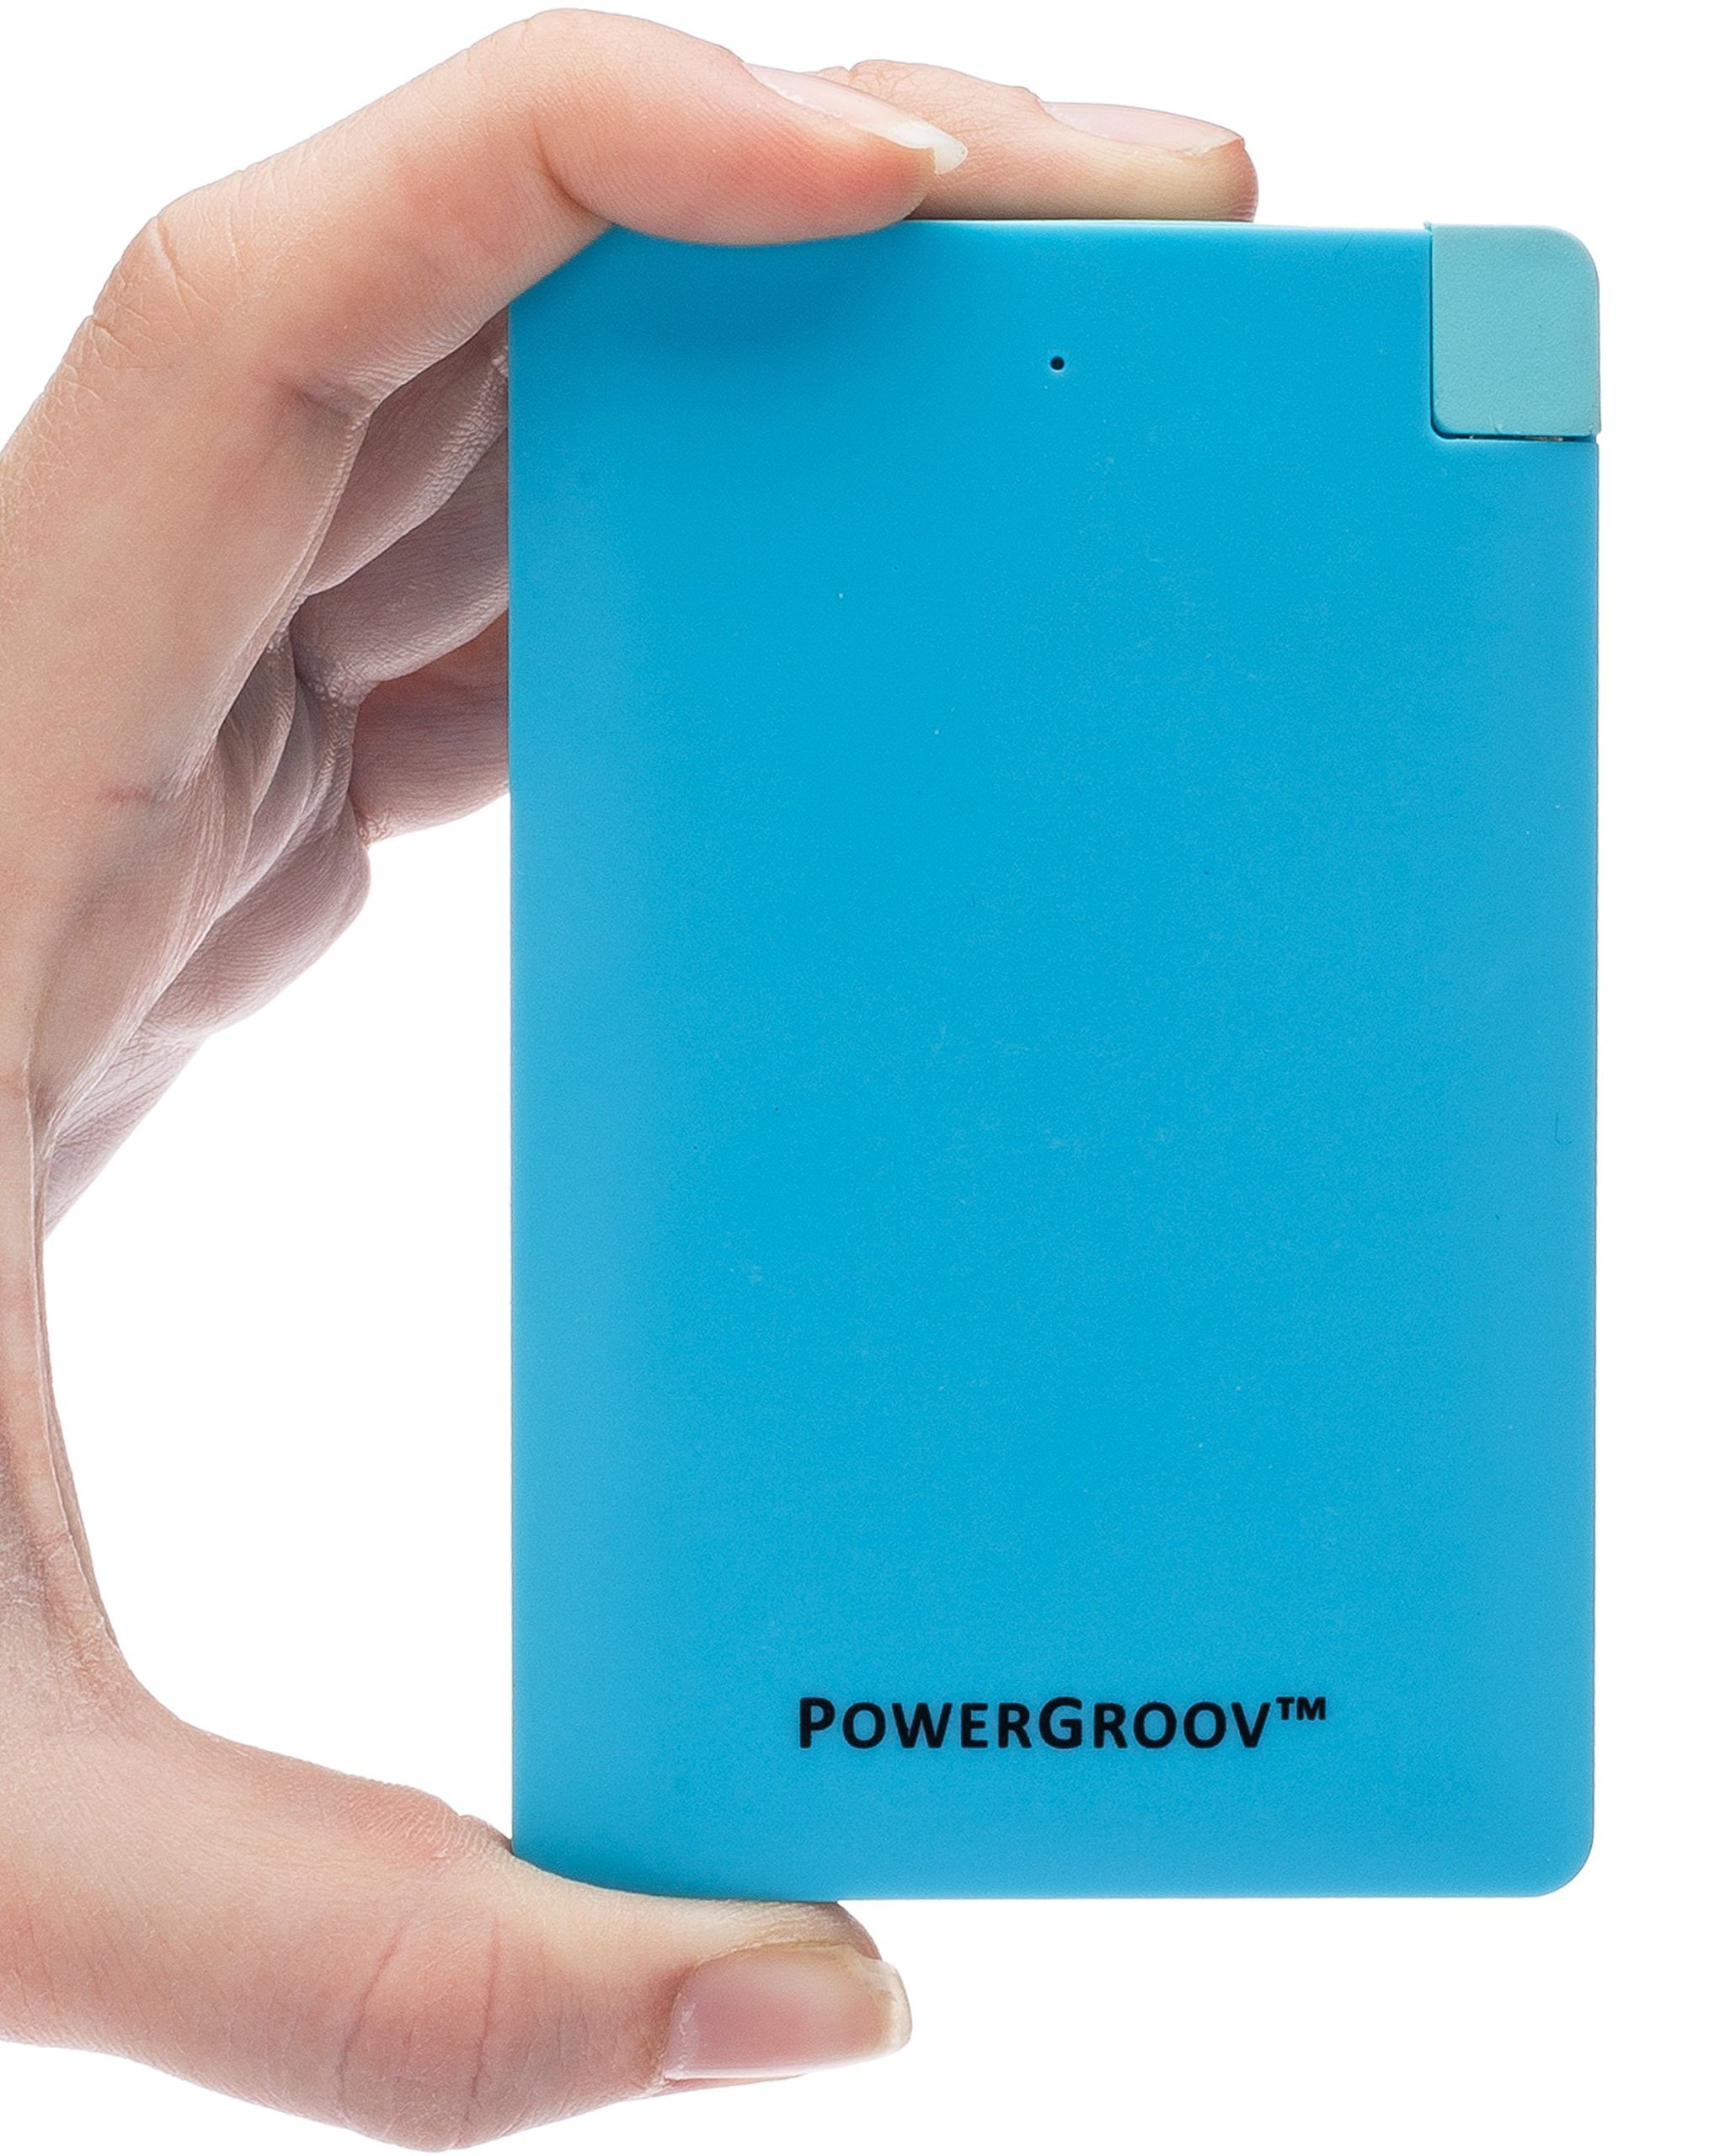 PowerGroov Power Bank 2500mAh Portable External Battery Pack Charger Built-in Micro USB for Android Phones & Apple iPhone. Ultra Slim & Lightweight, Fits Even Your Pocket or Wallet (Blue)